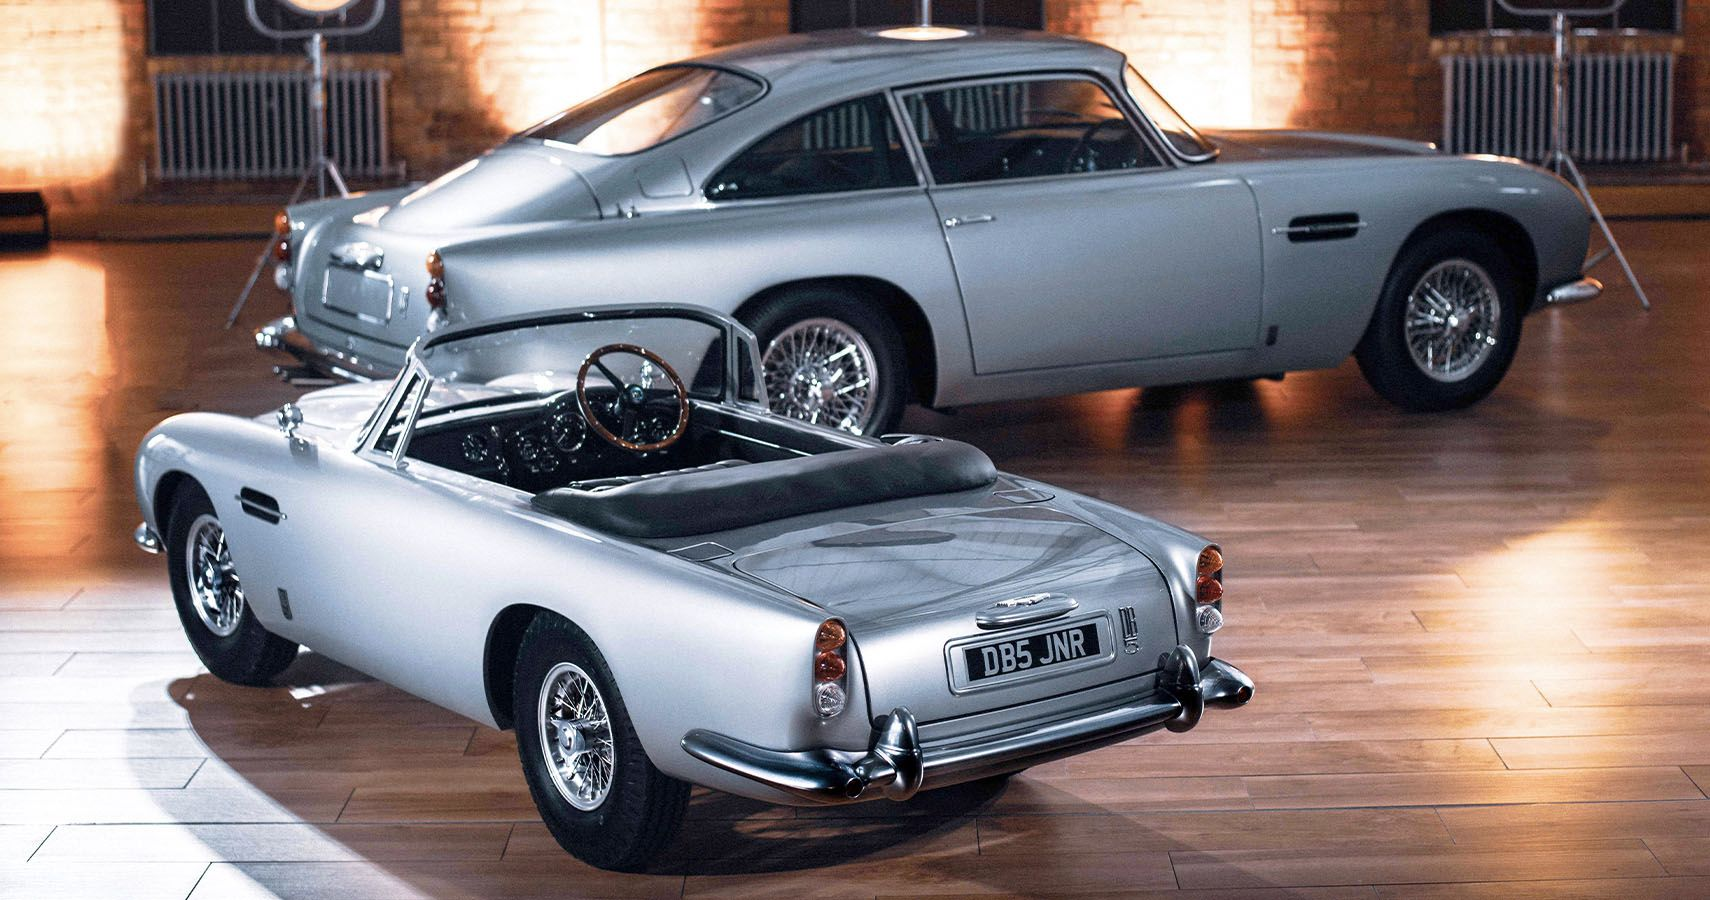 EXCLUSIVE: How The Little Car Co Built The Mini James Bond-Inspired DB5 Junior